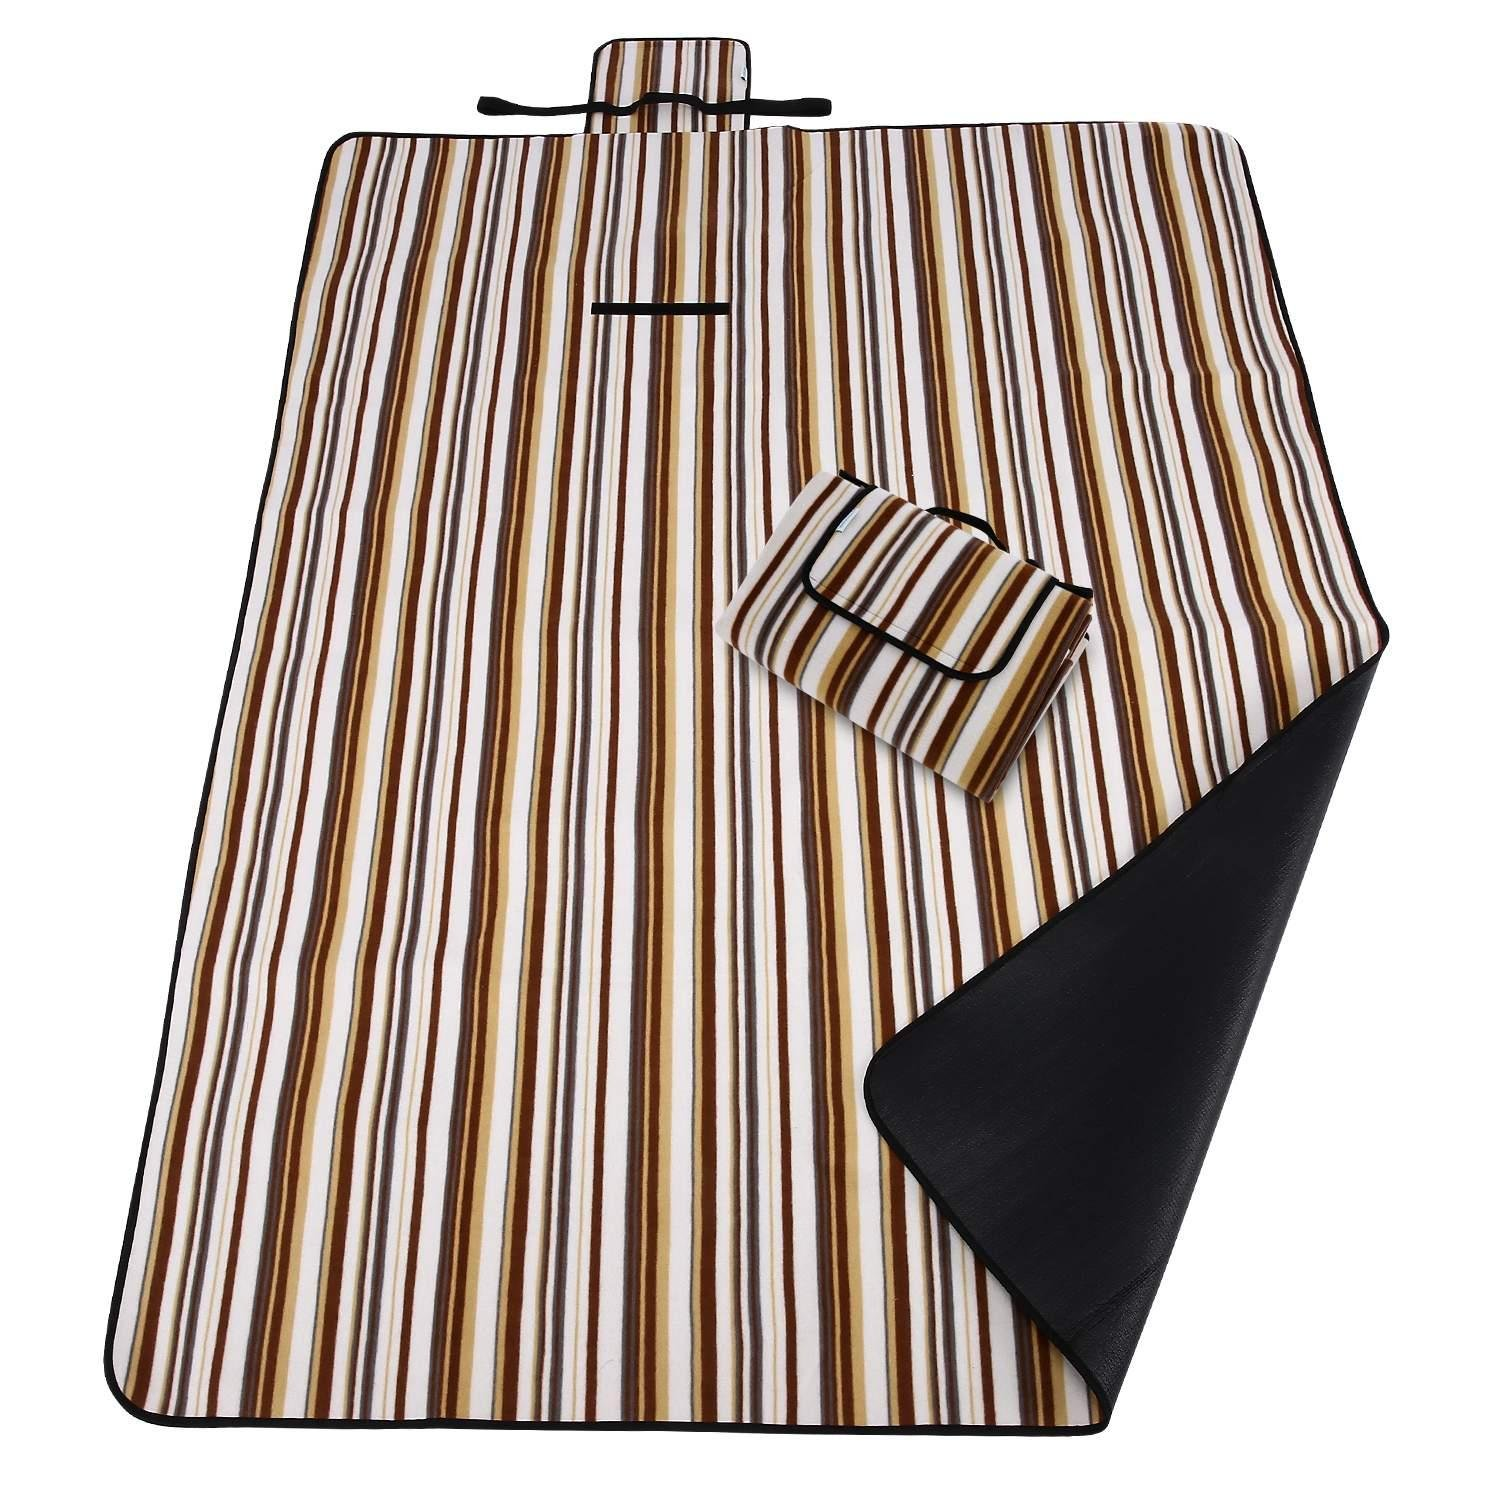 Waterproof Lightweight Large Outdoor Picnic Blanket Mat Escape Plaid Striped Fleece Camping Blankets Tote (type1)